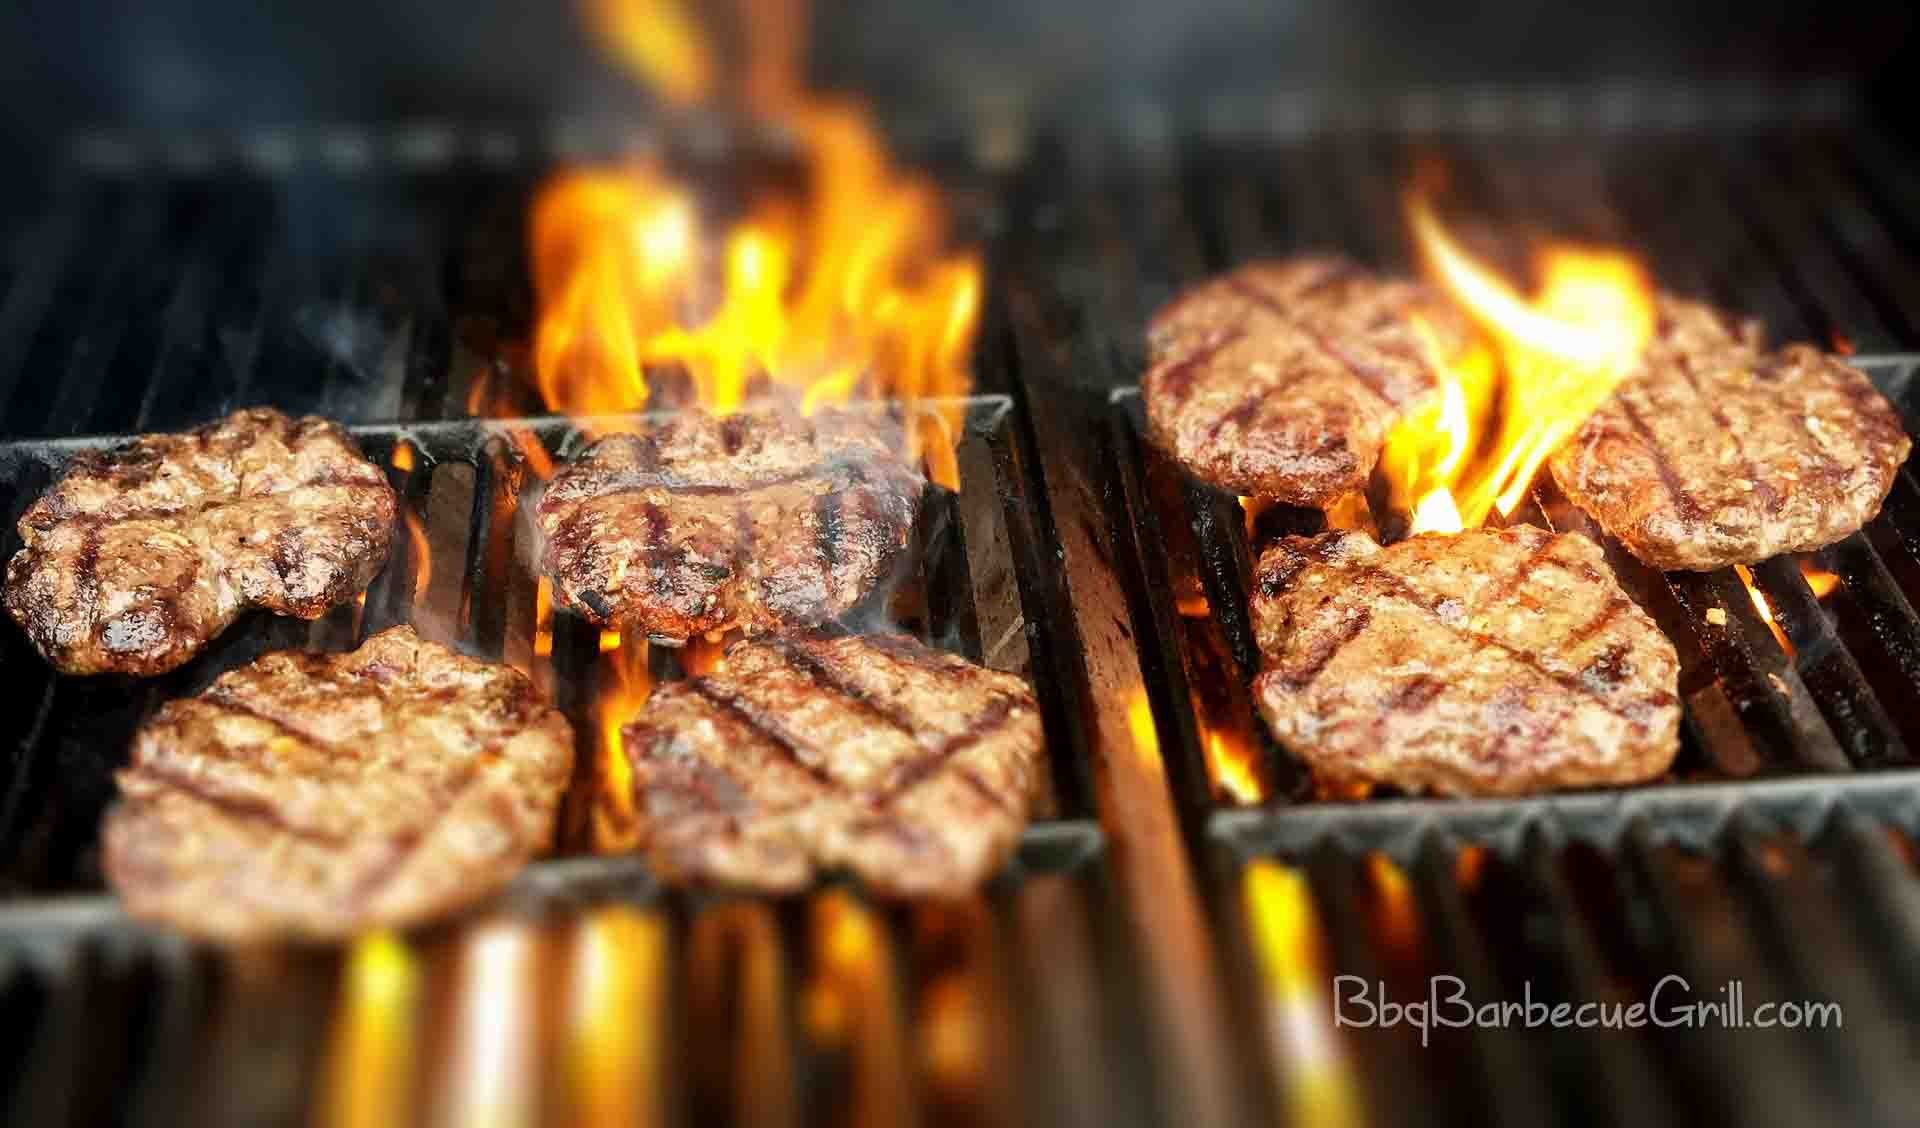 How to use a Weber grill